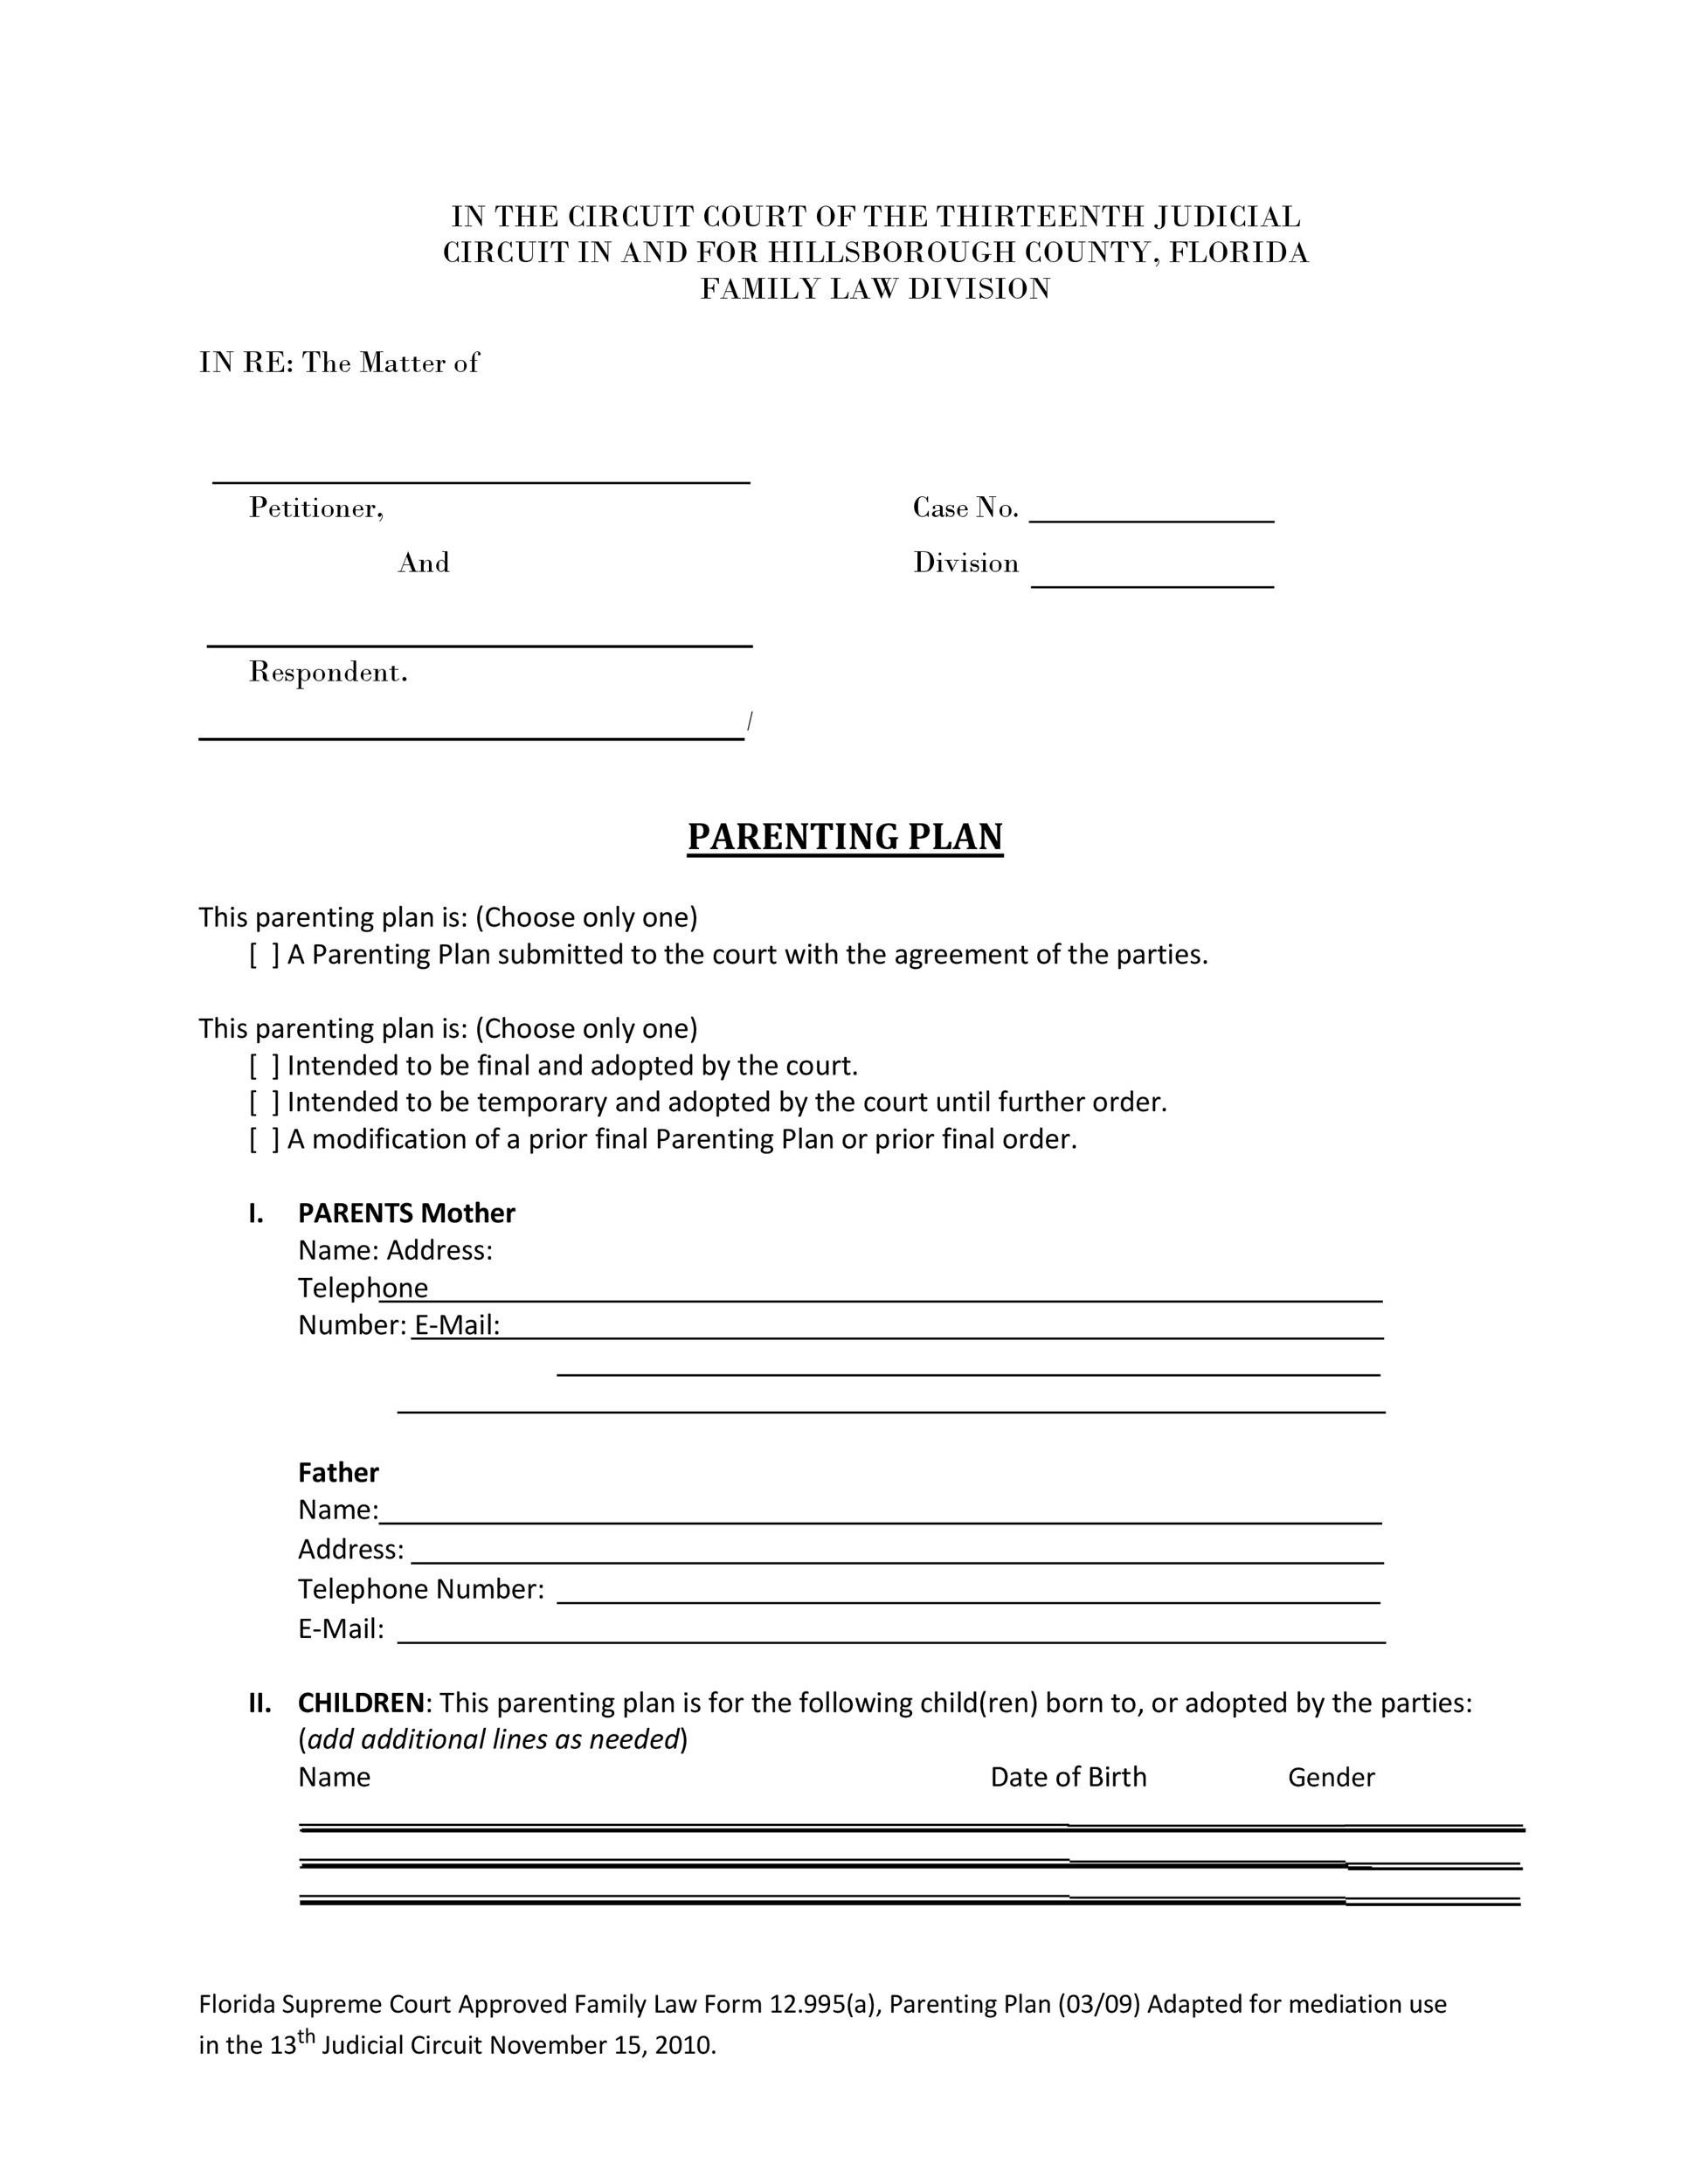 Free parenting plan template 31